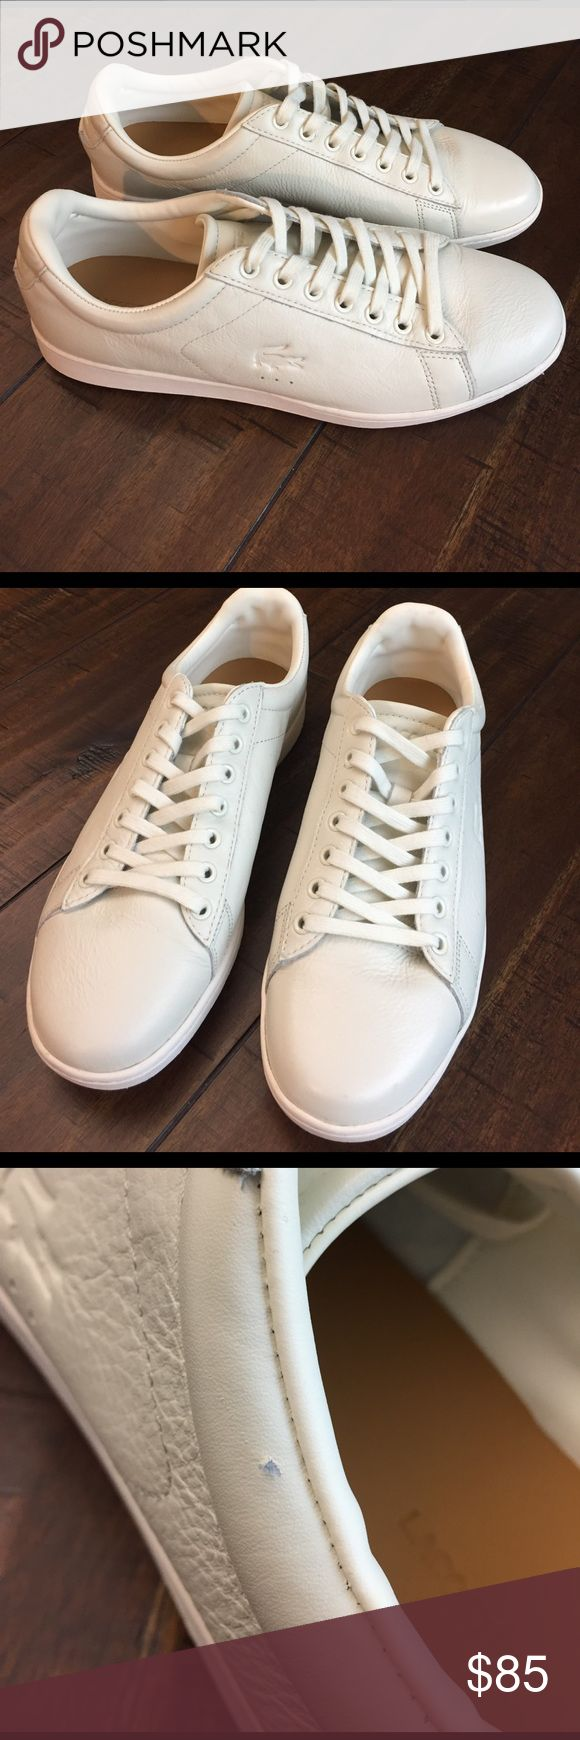 Lacoste Carnaby Evo 2 Excellent condition off white sneakers that were worn once. Purchased from Nordstrom for well over $100. Two tiny nicks shown in last two pictures. What a steal these are! Lacoste Shoes Sneakers